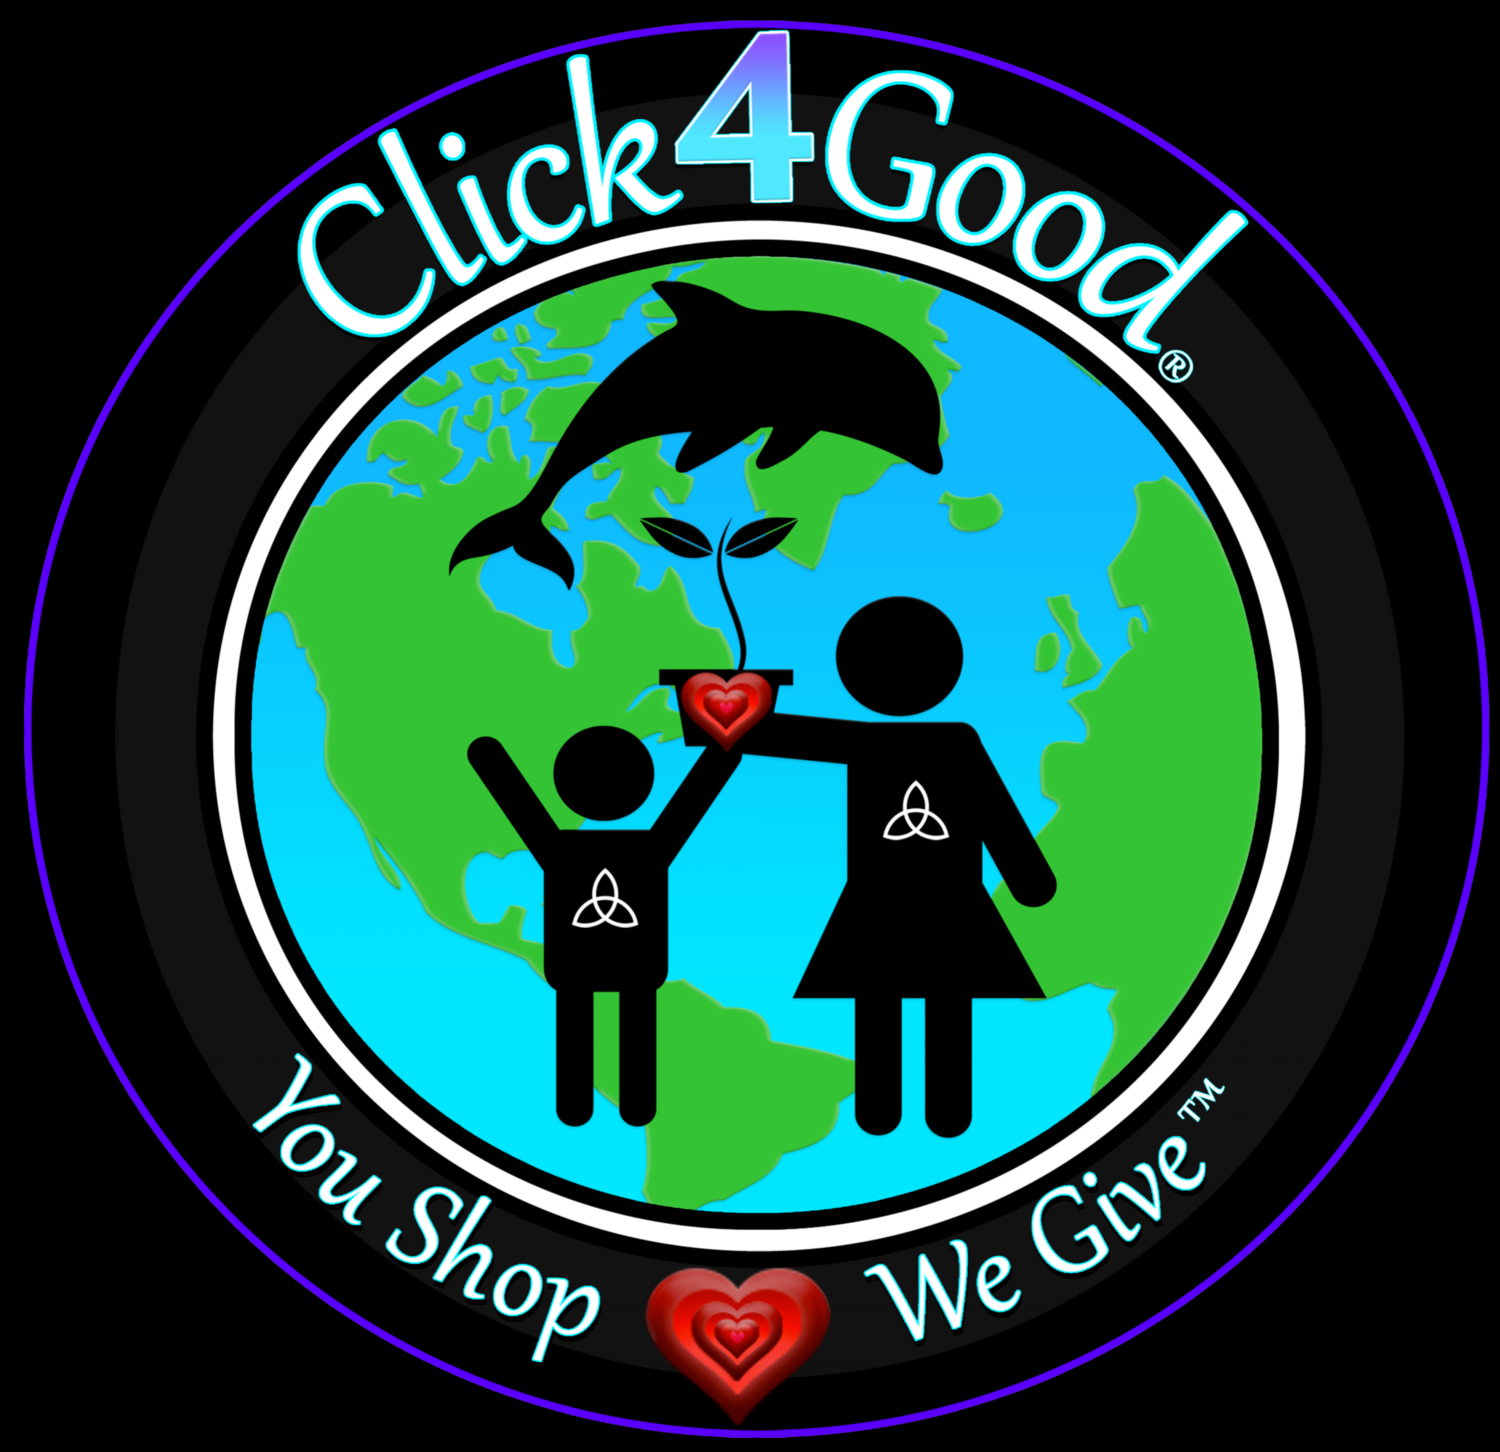 Click4Good.org